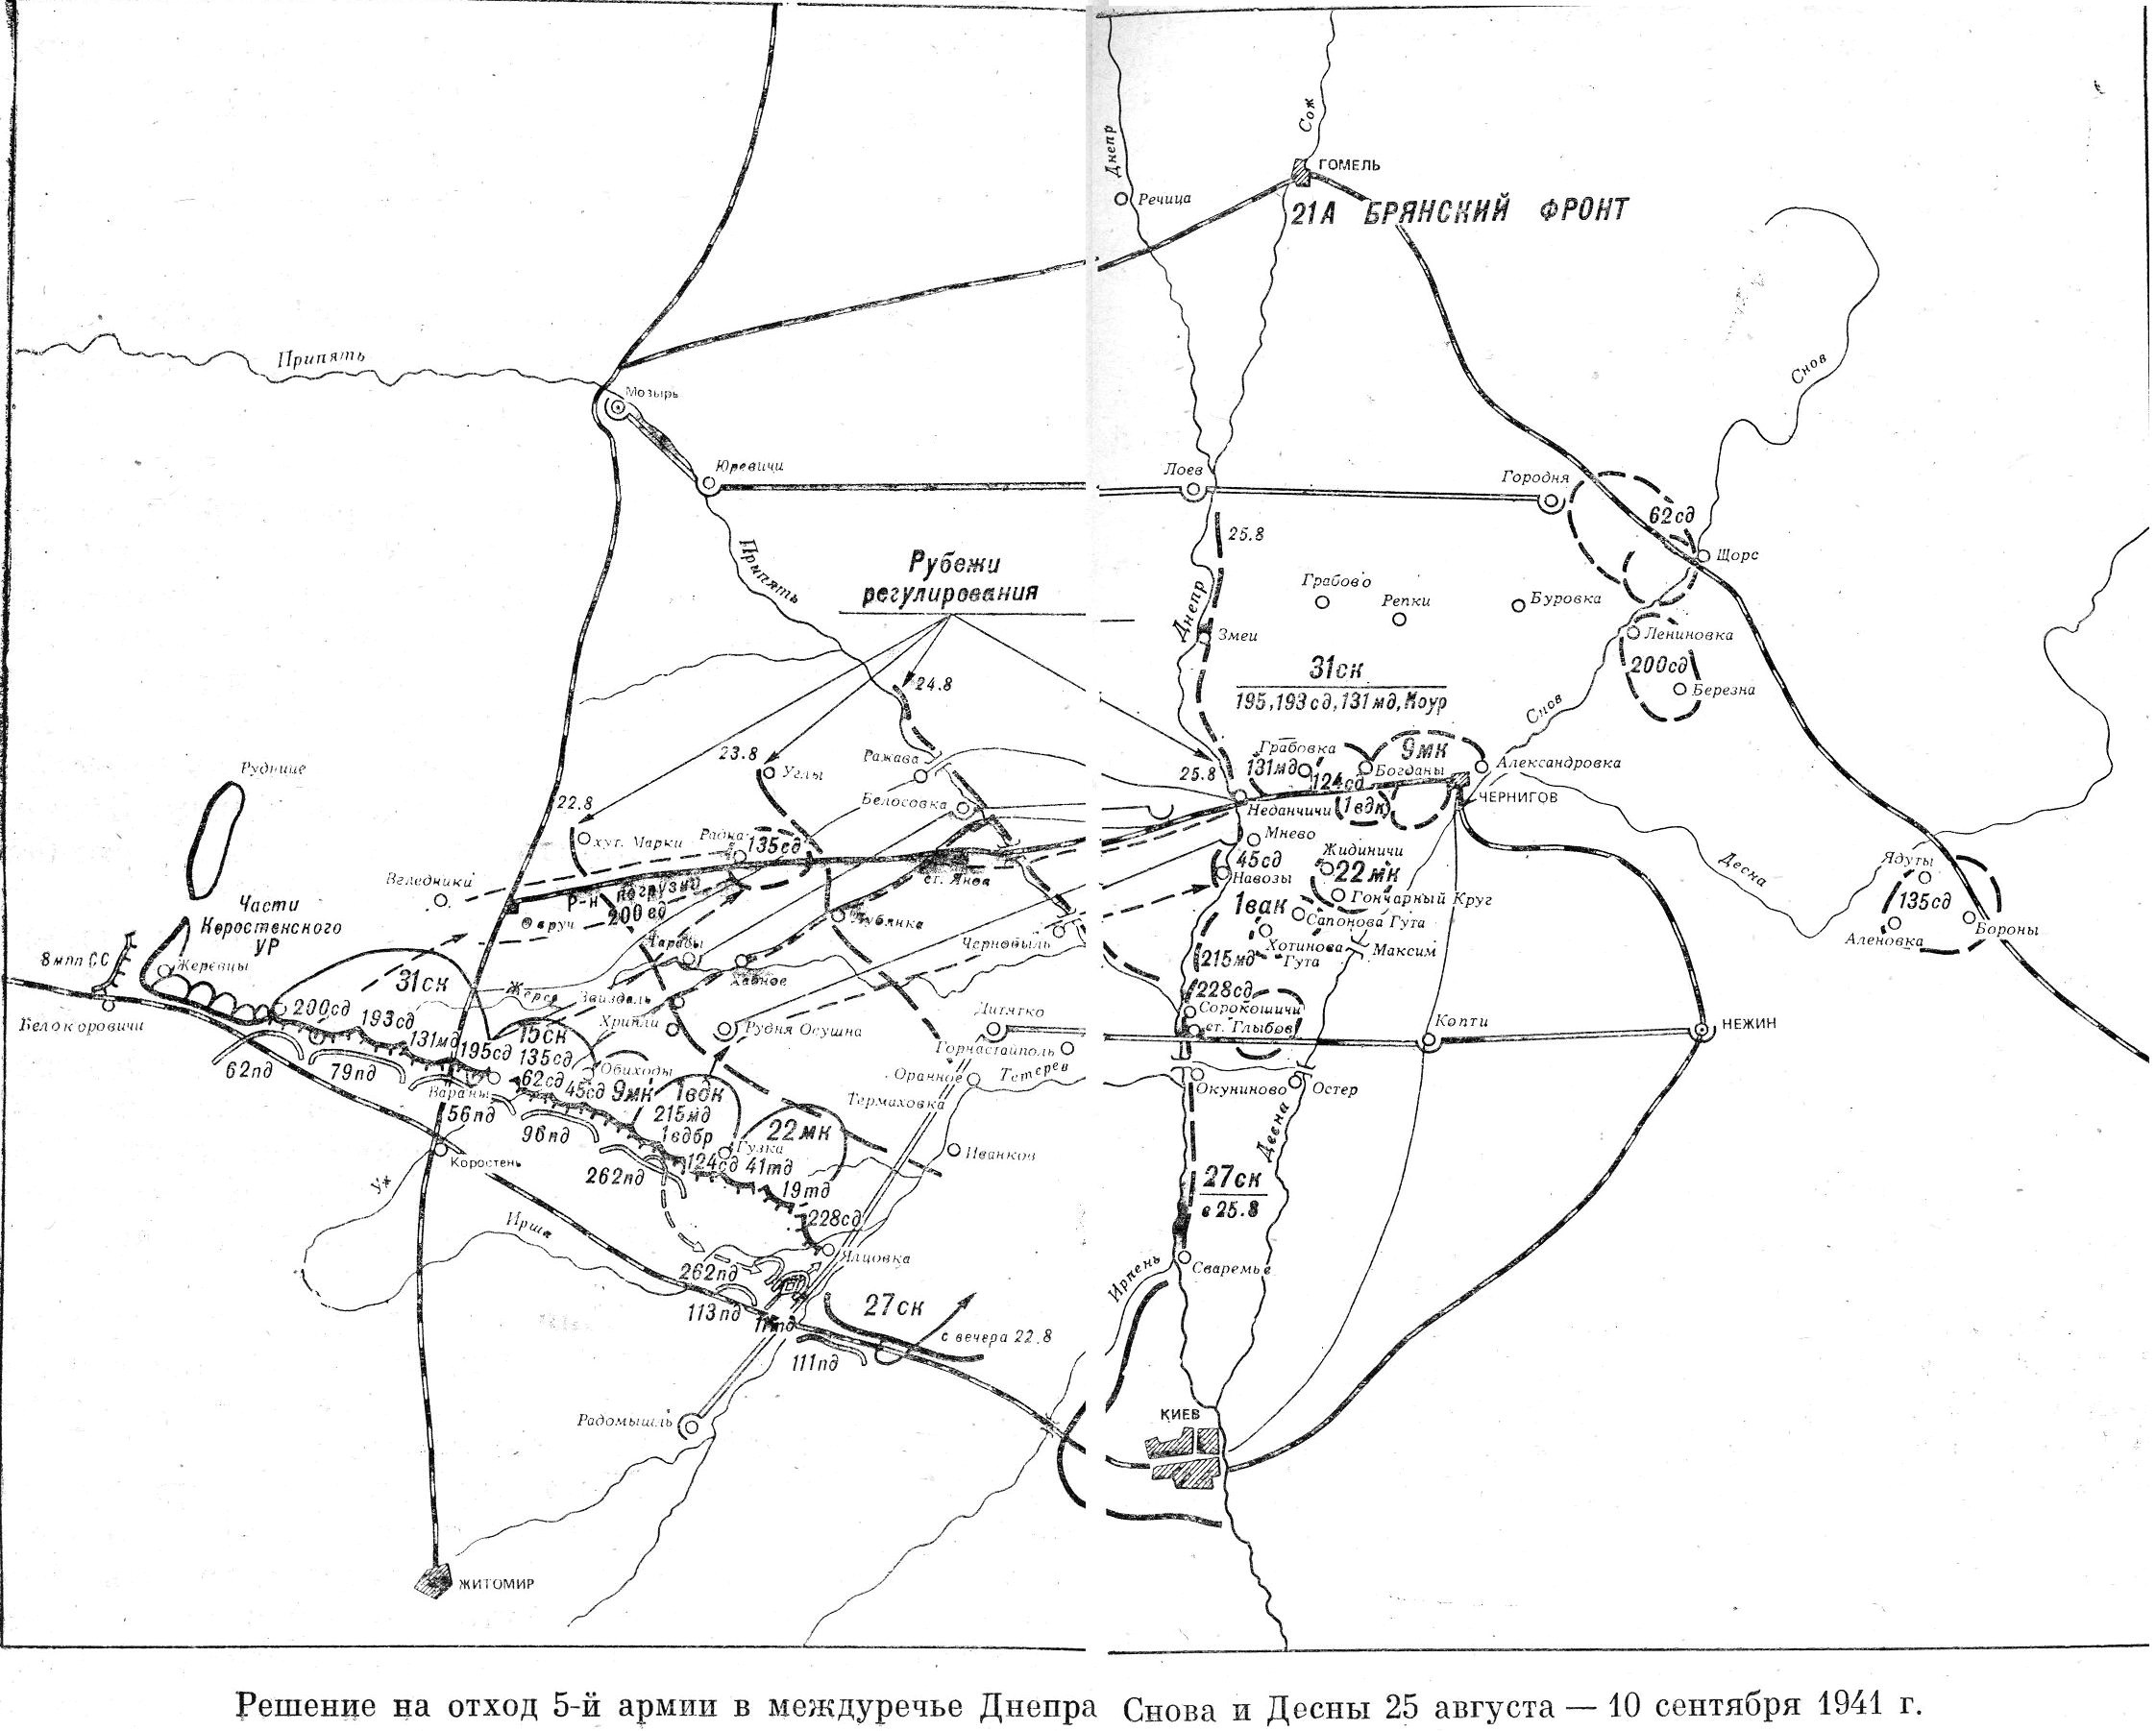 Sw4127 decision on the retreat of the 5th army